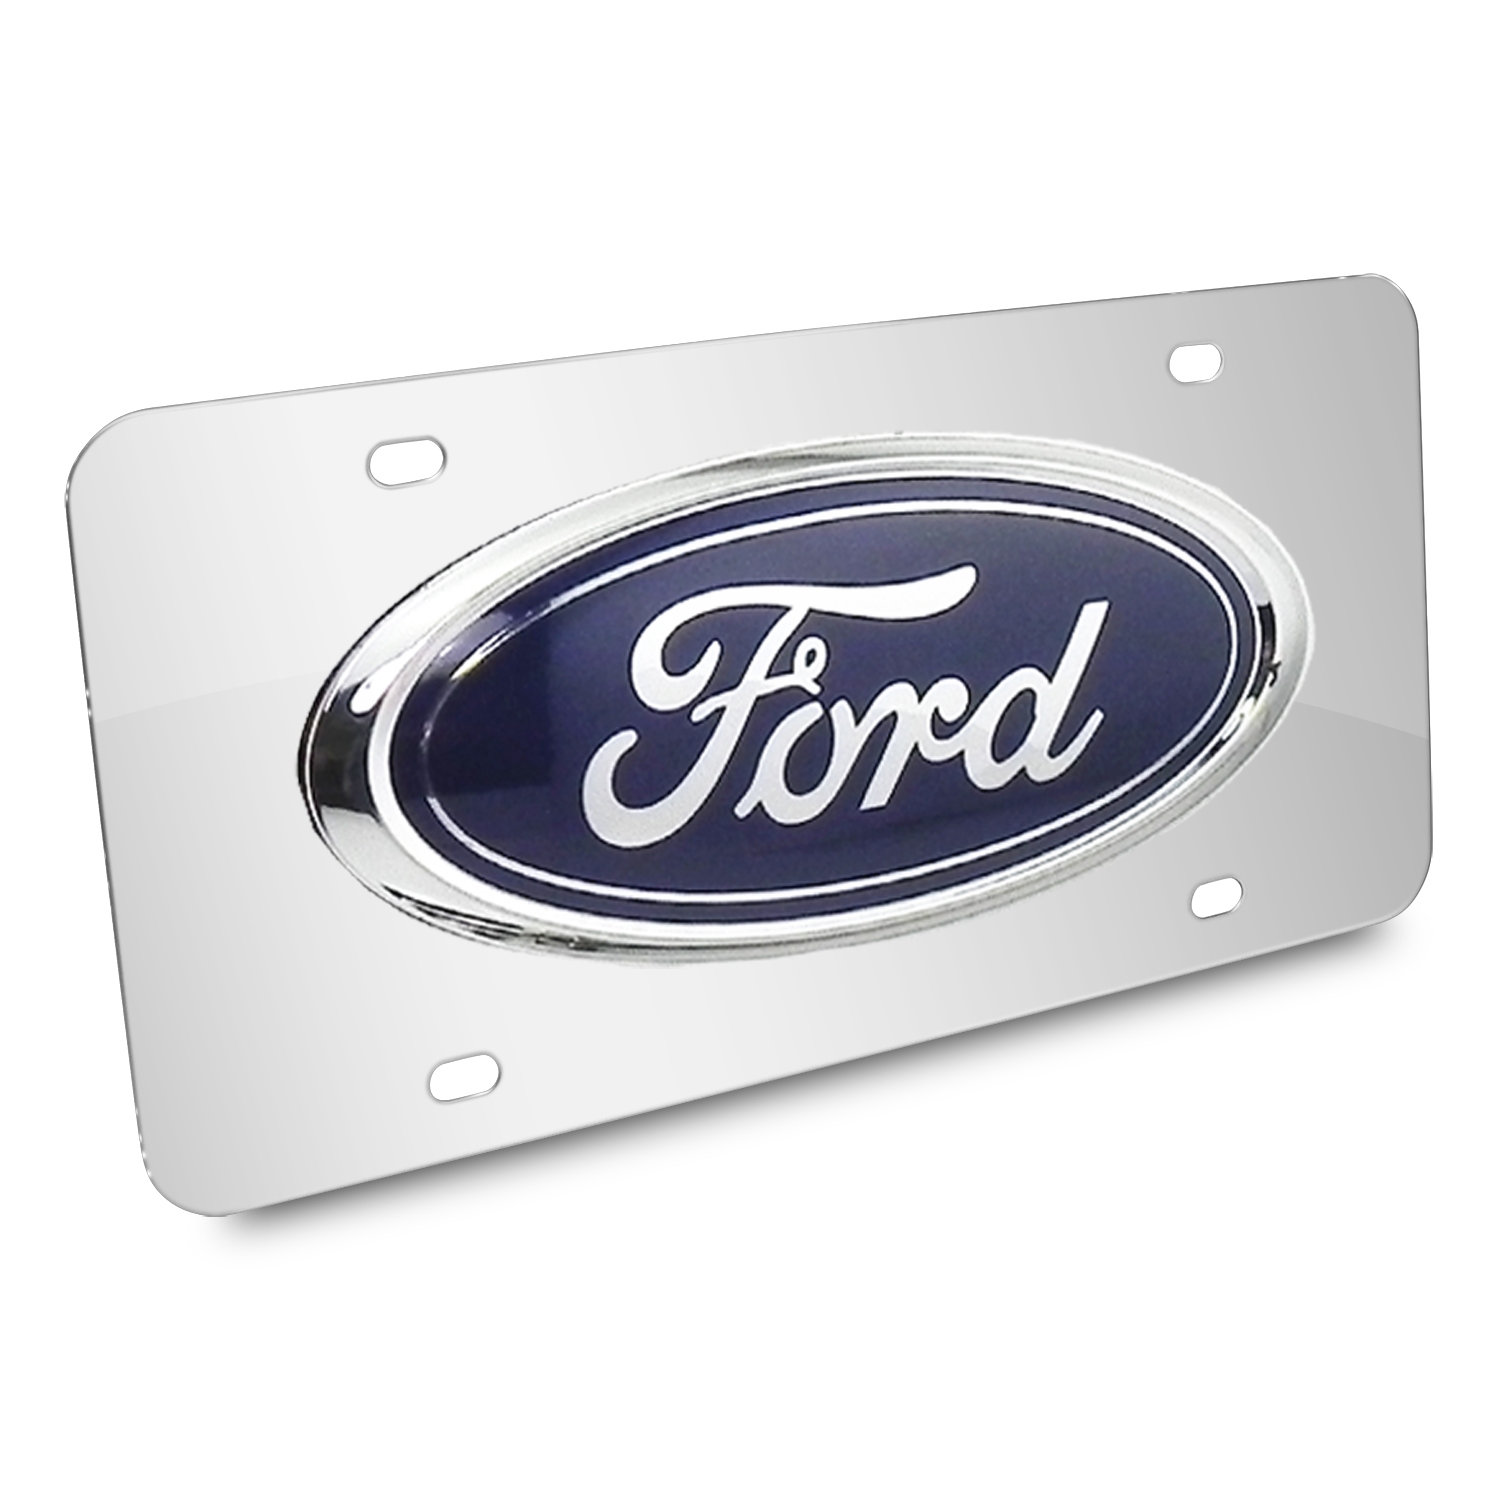 Ford Oval 3D Logo Chrome Stainless Steel License Plate